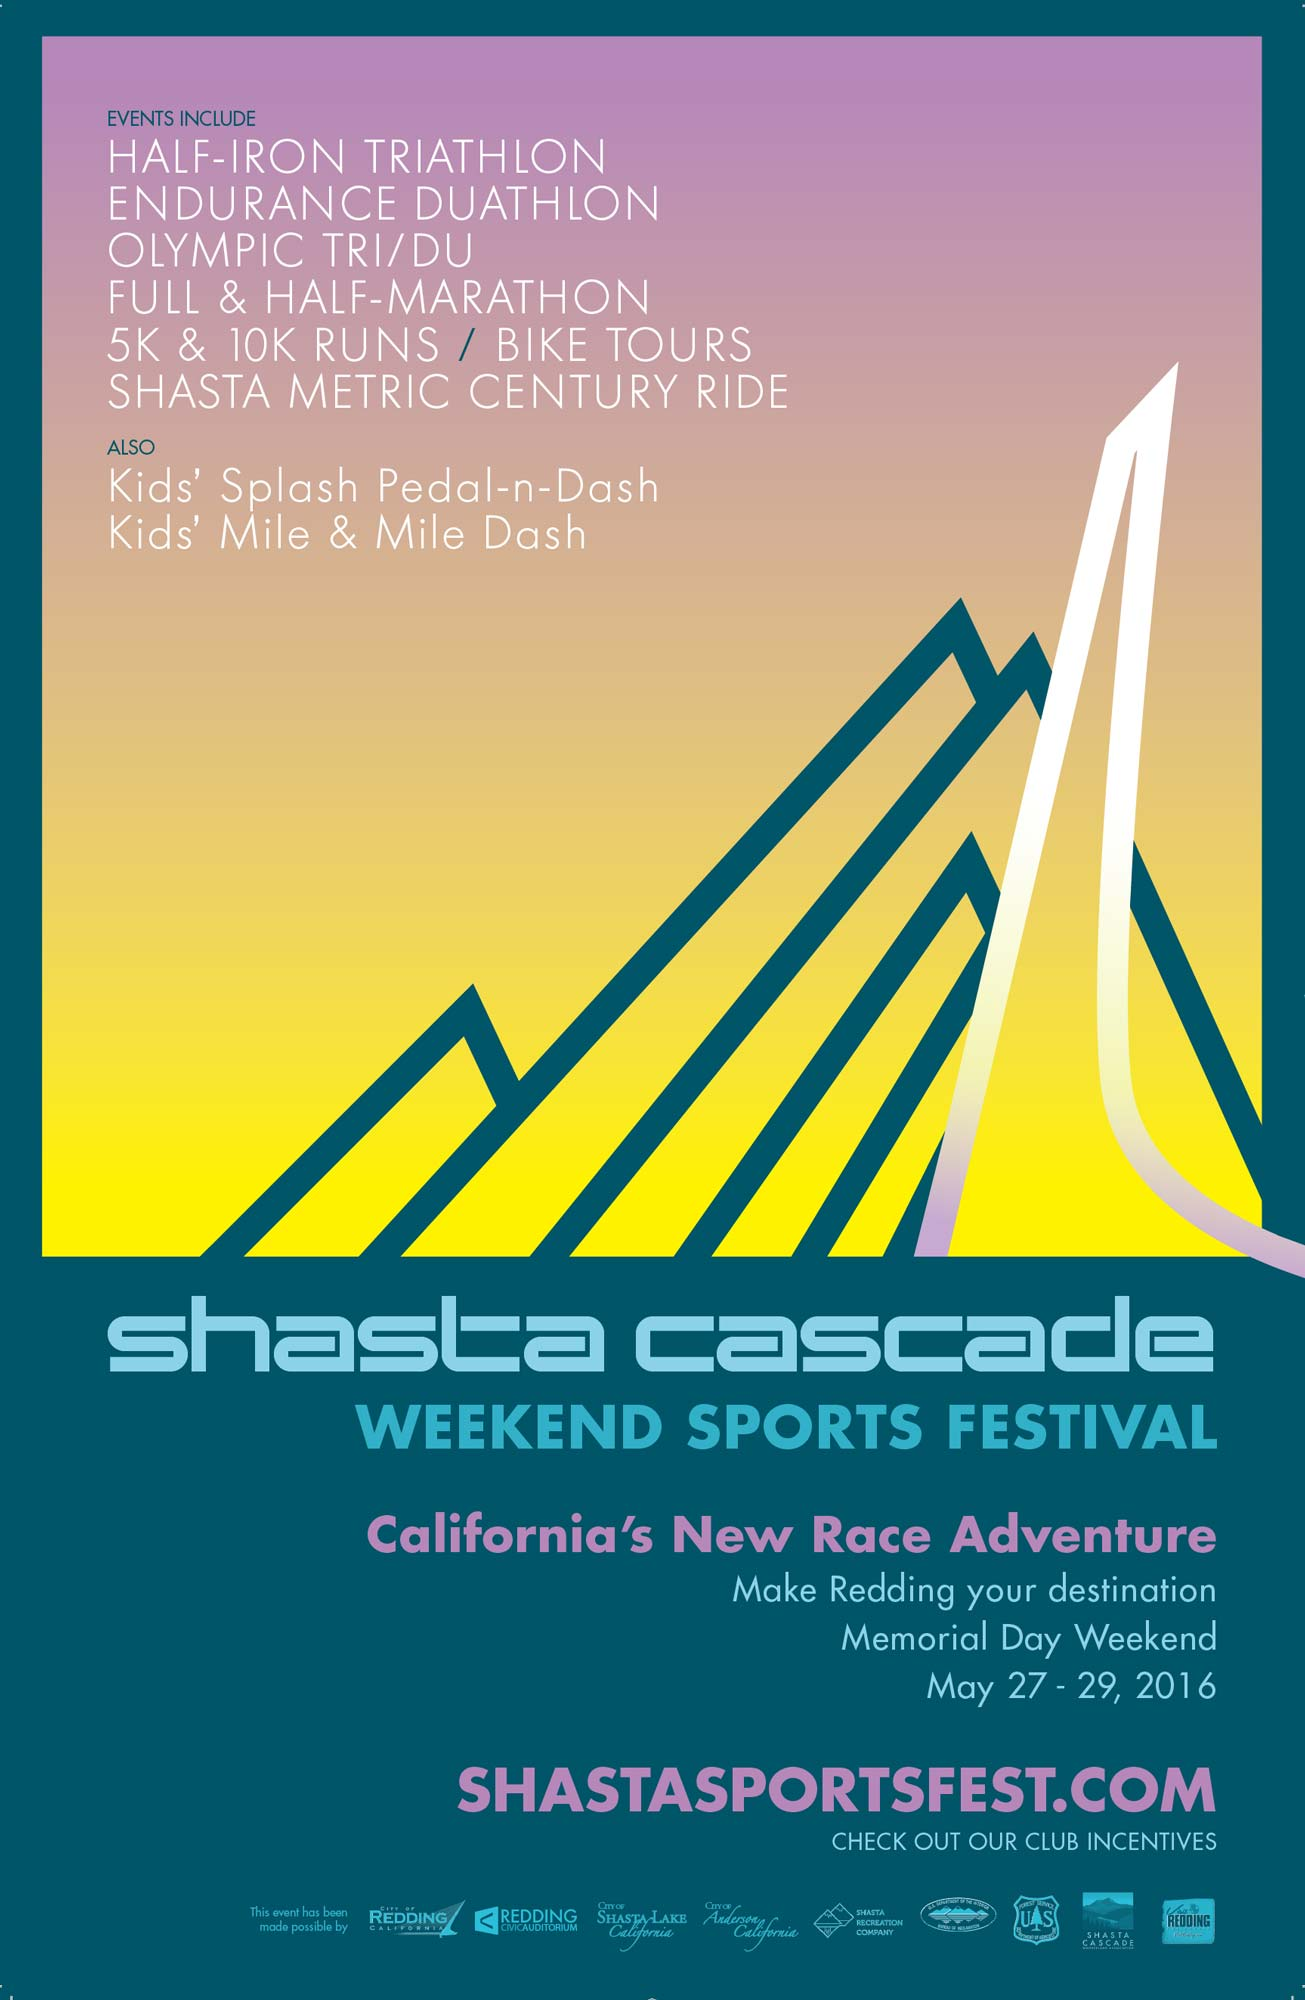 Our work: Shasta Cascade Sports Event Poster